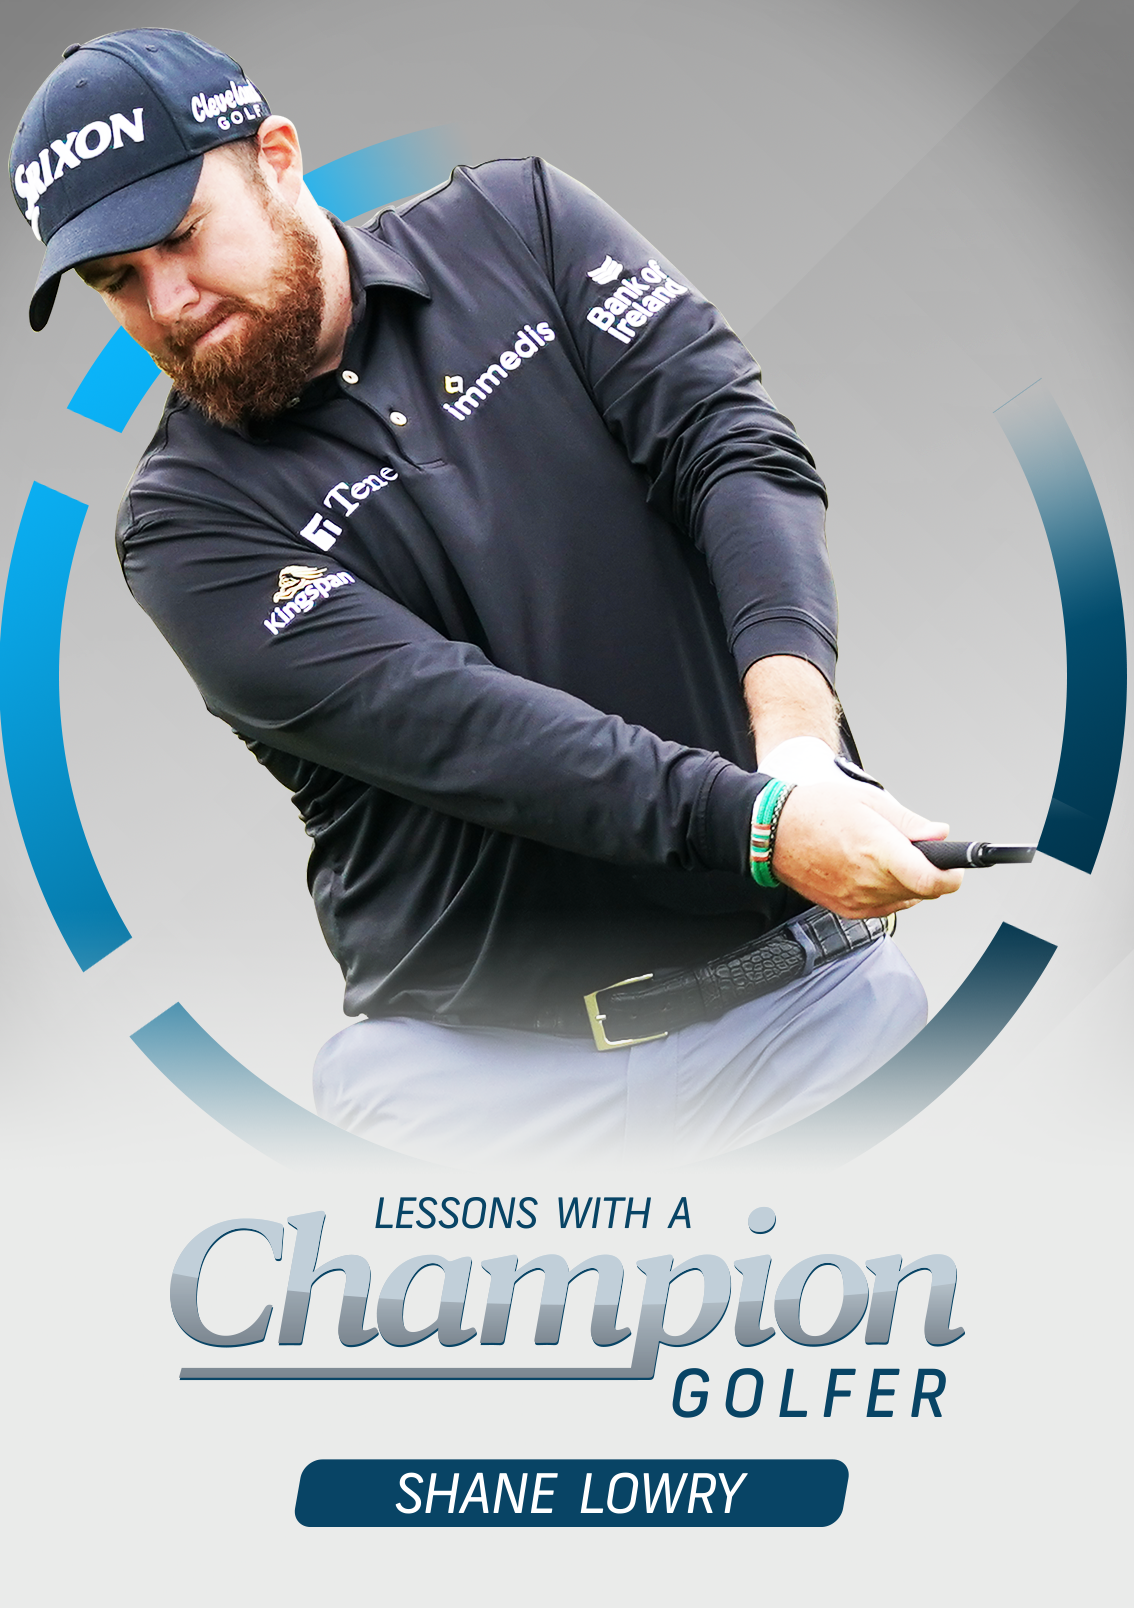 Lessons with a Campion Golfer Shane Lowry